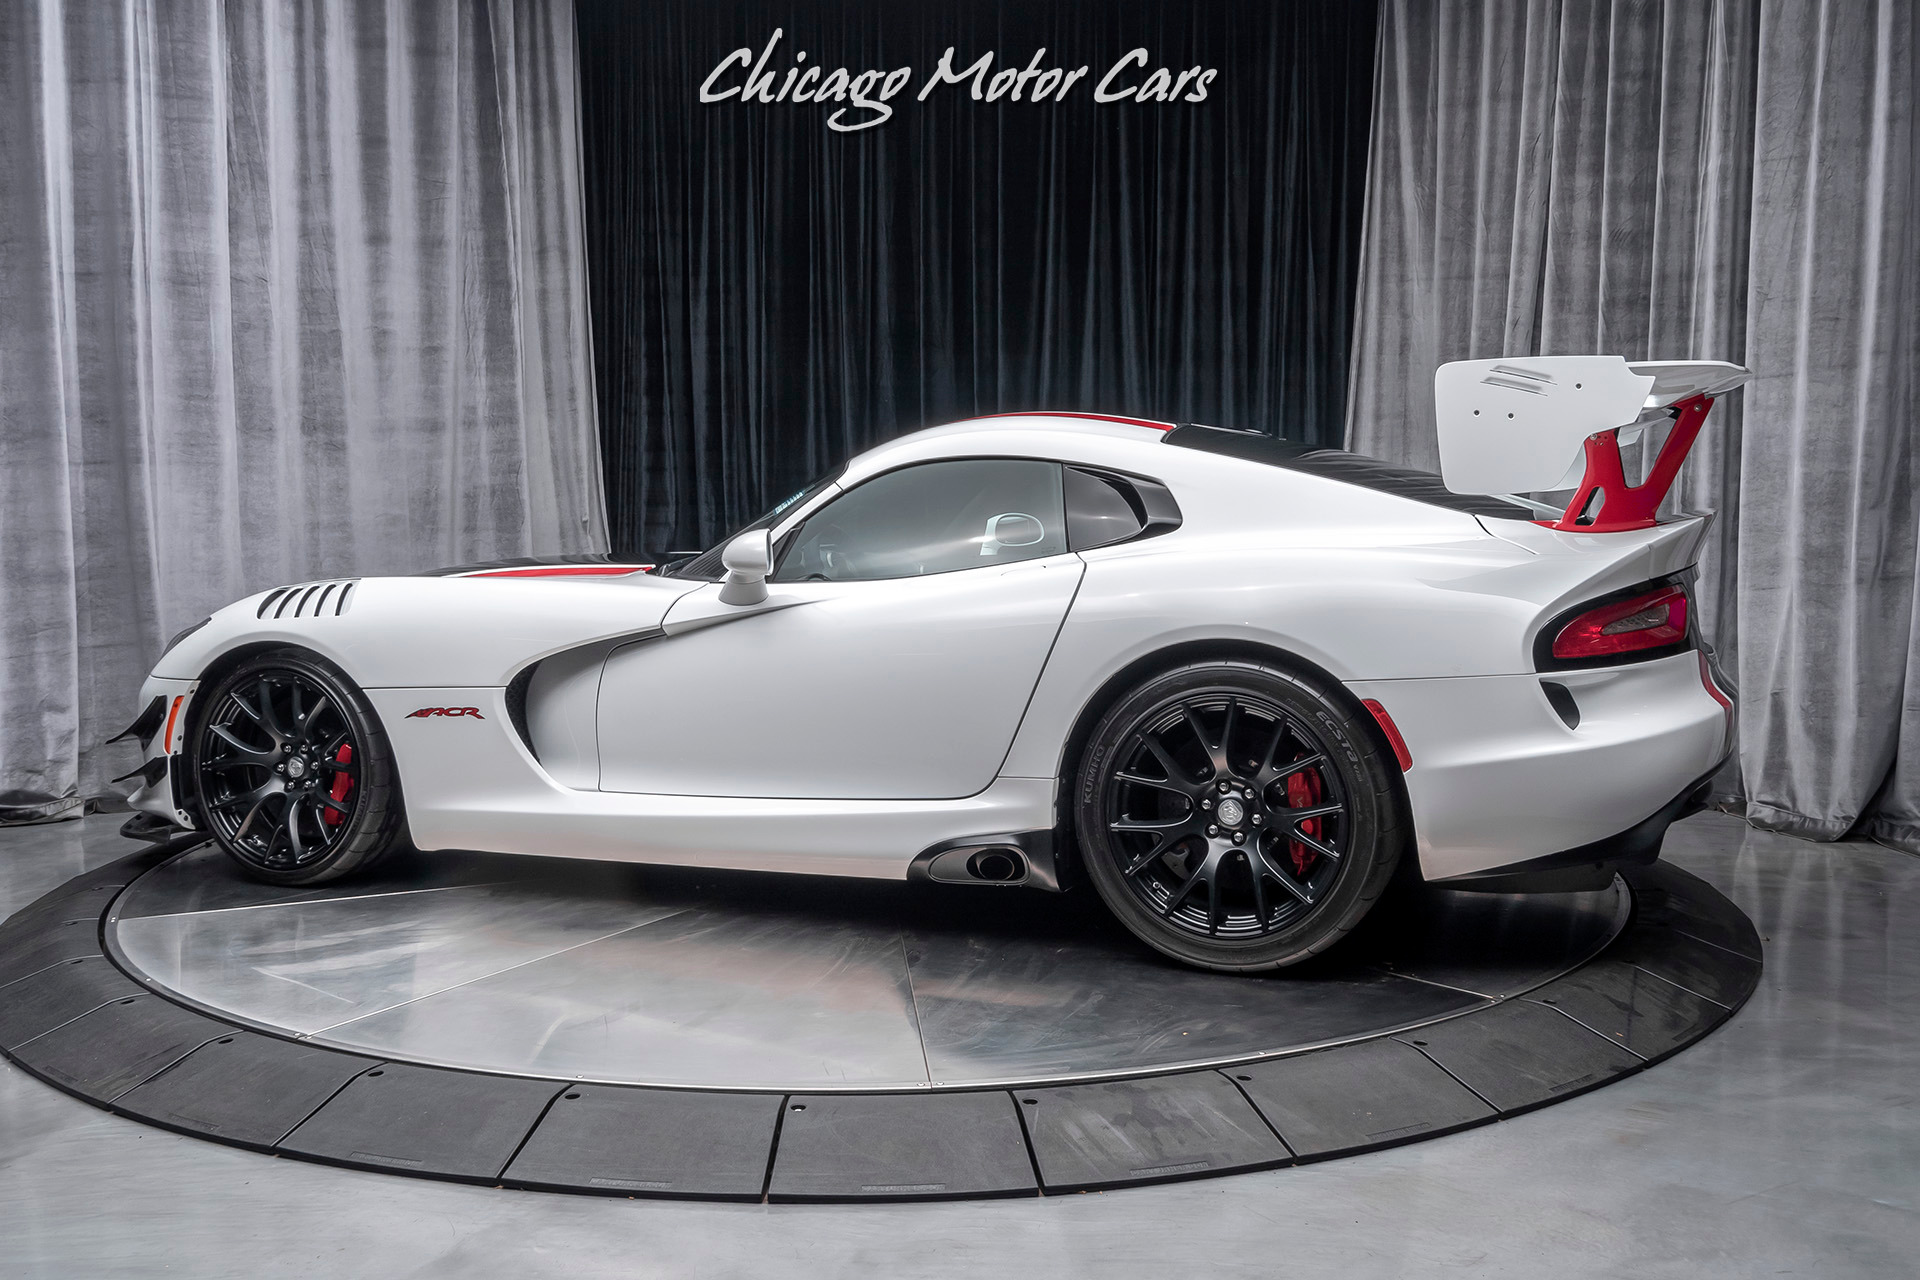 Used-2016-Dodge-Viper-ACR-Coupe-EXTREME-AERO-PACKAGE-STREET-LEGAL-RACE-CAR